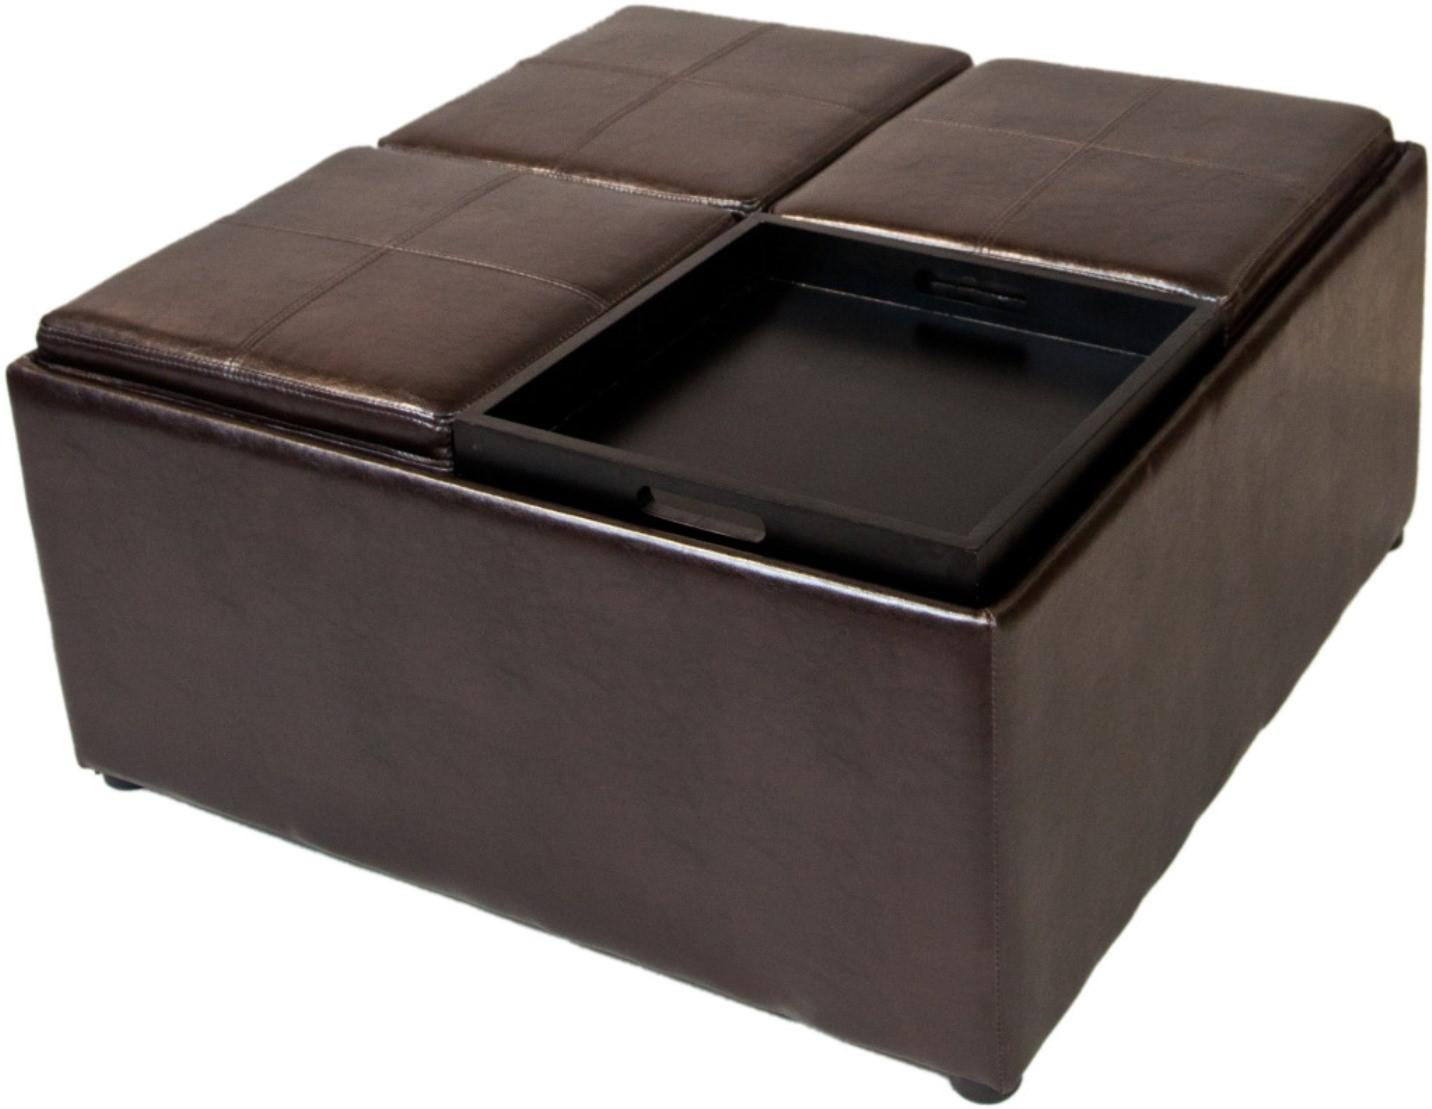 Simpli home avalon coffee table storage ottoman w 4 serving trays pu leather brown Ottoman coffee table trays